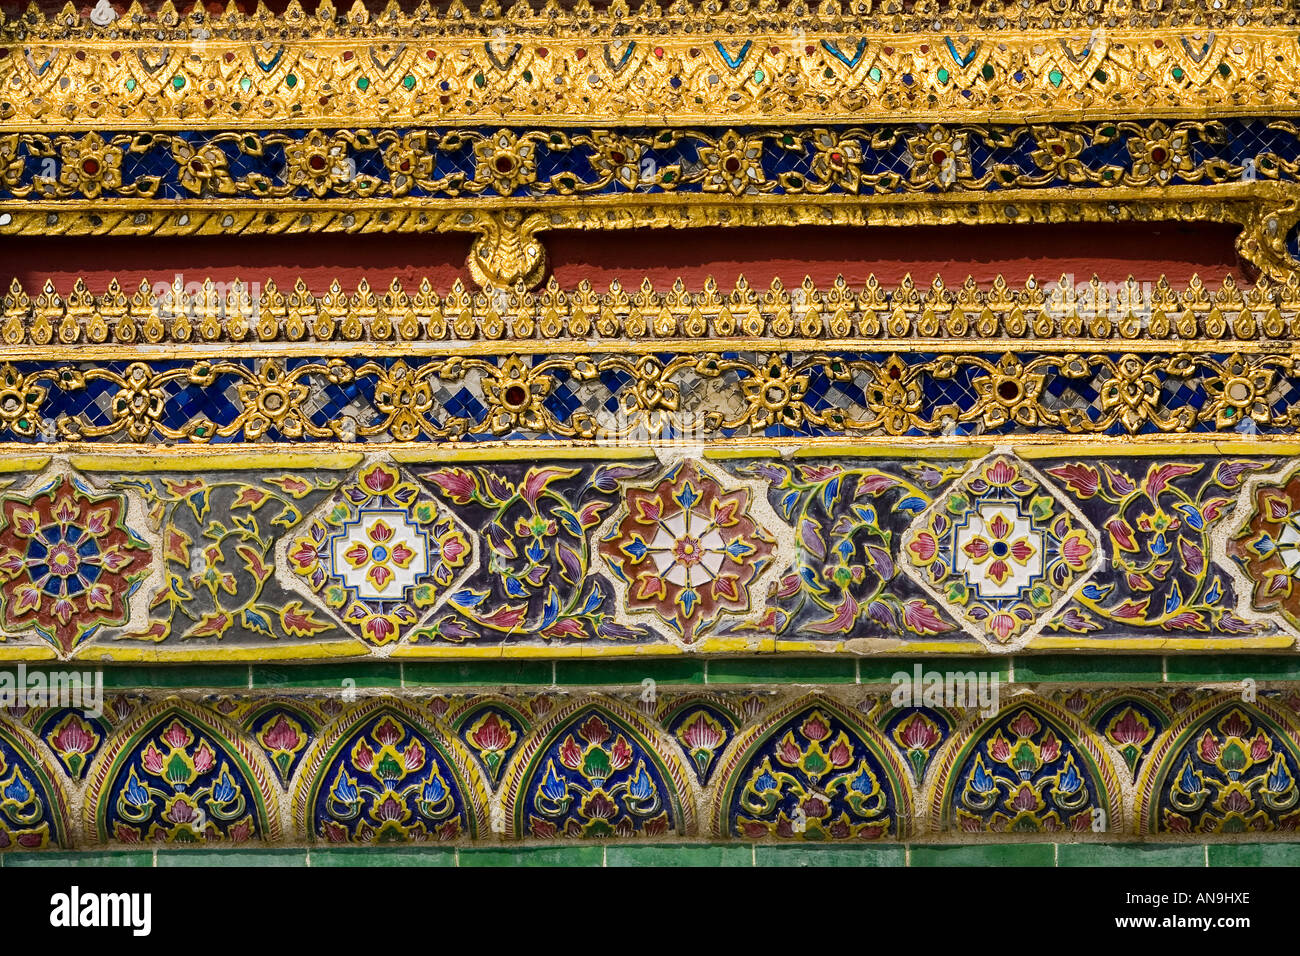 Decorative tiles within The Grand Palace and Temple Complex Bangkok Thailand - Stock Image